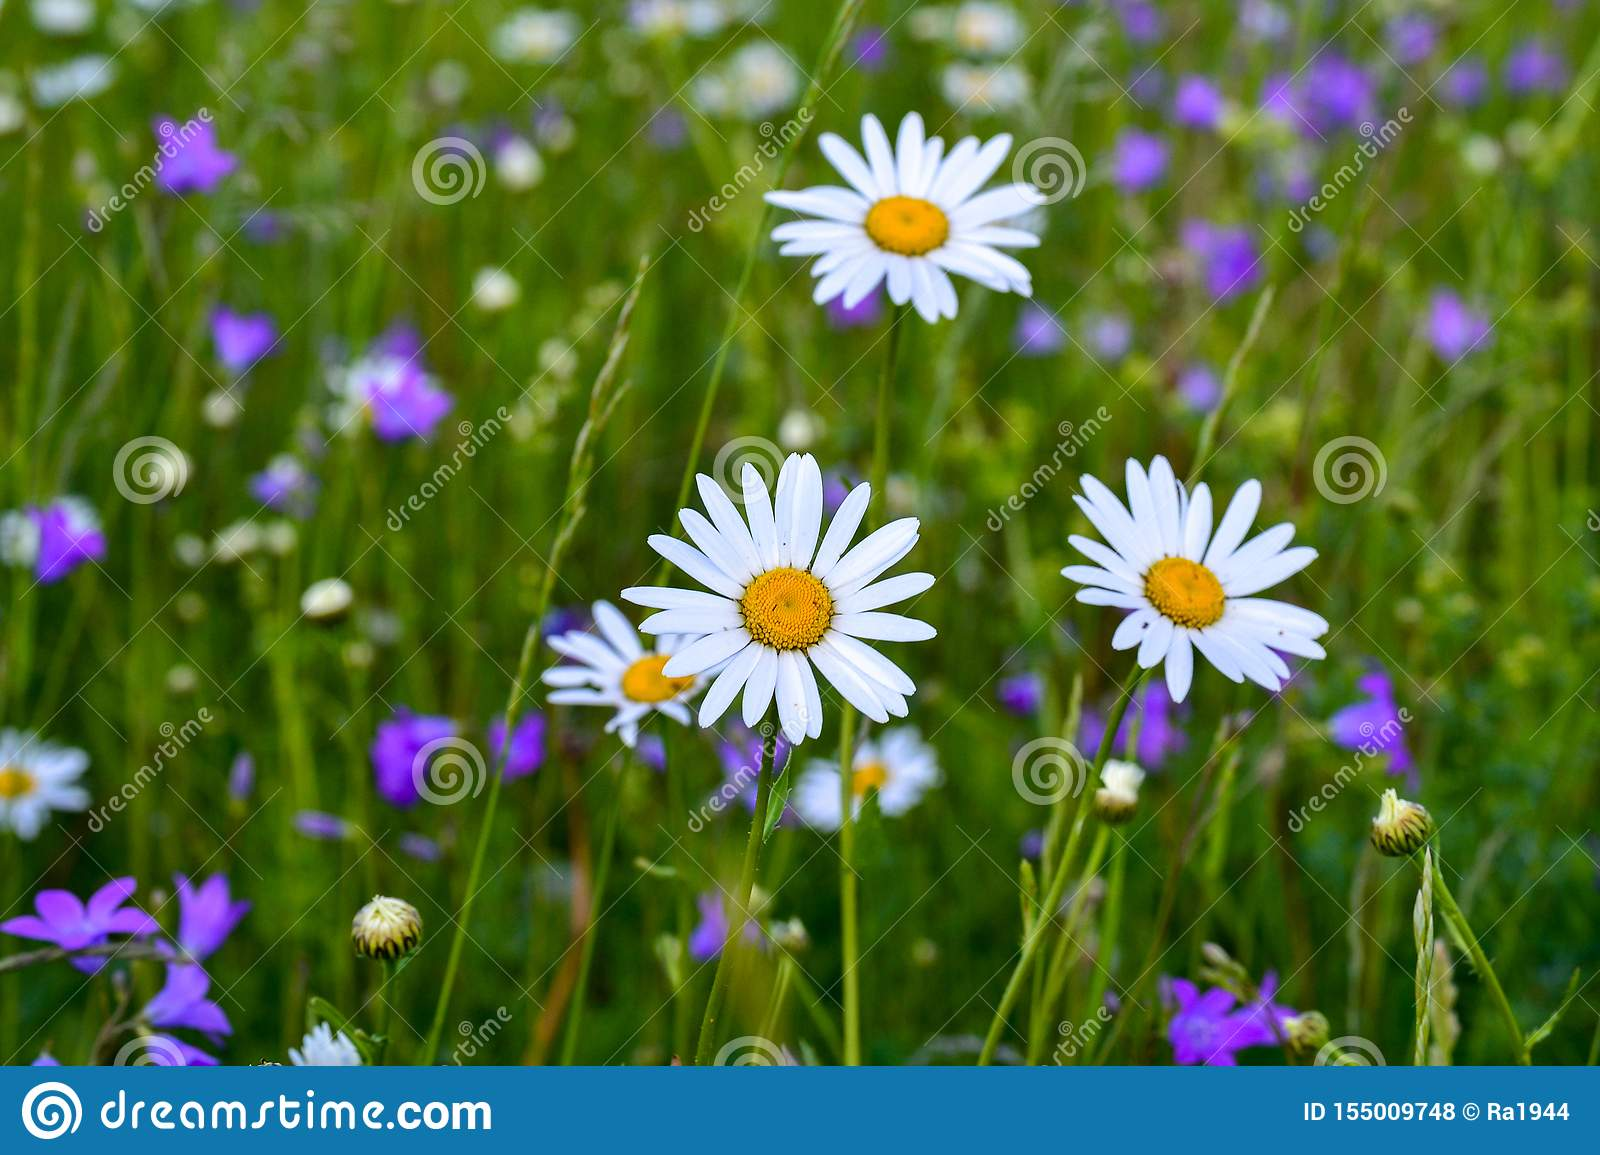 Three white daisies in a field among other wild flowers